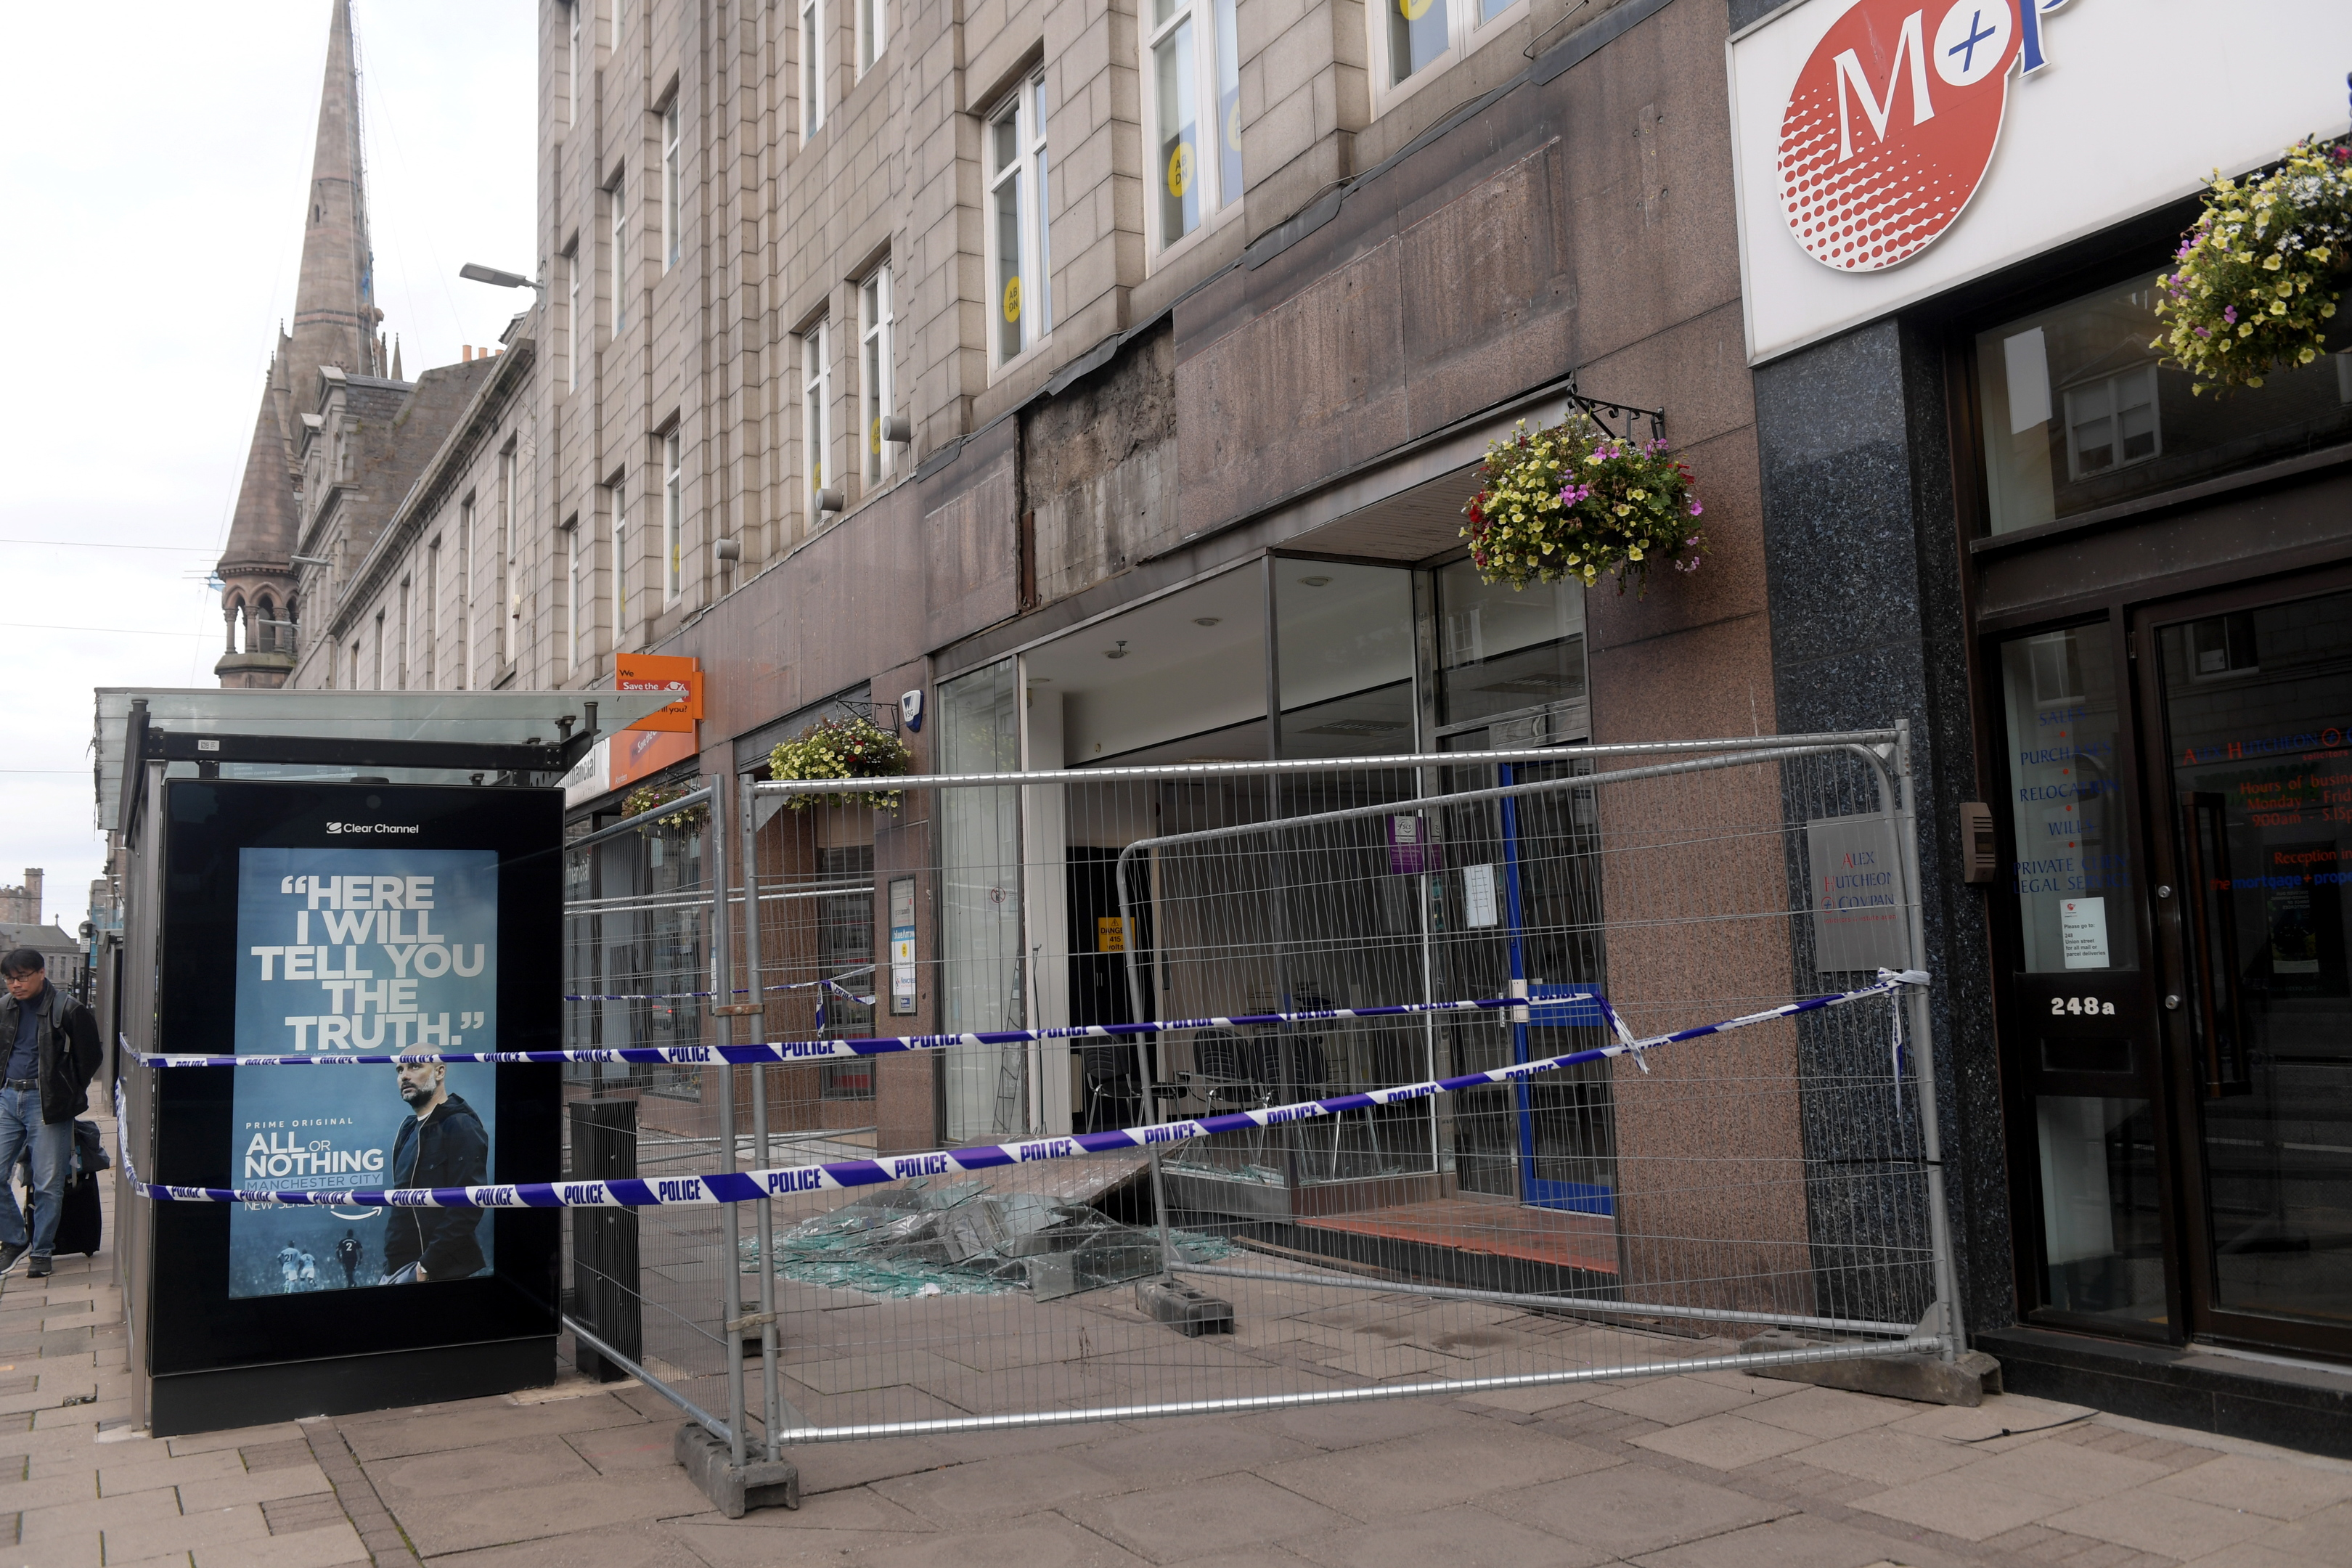 The smashed window on Aberdeen's Union Street